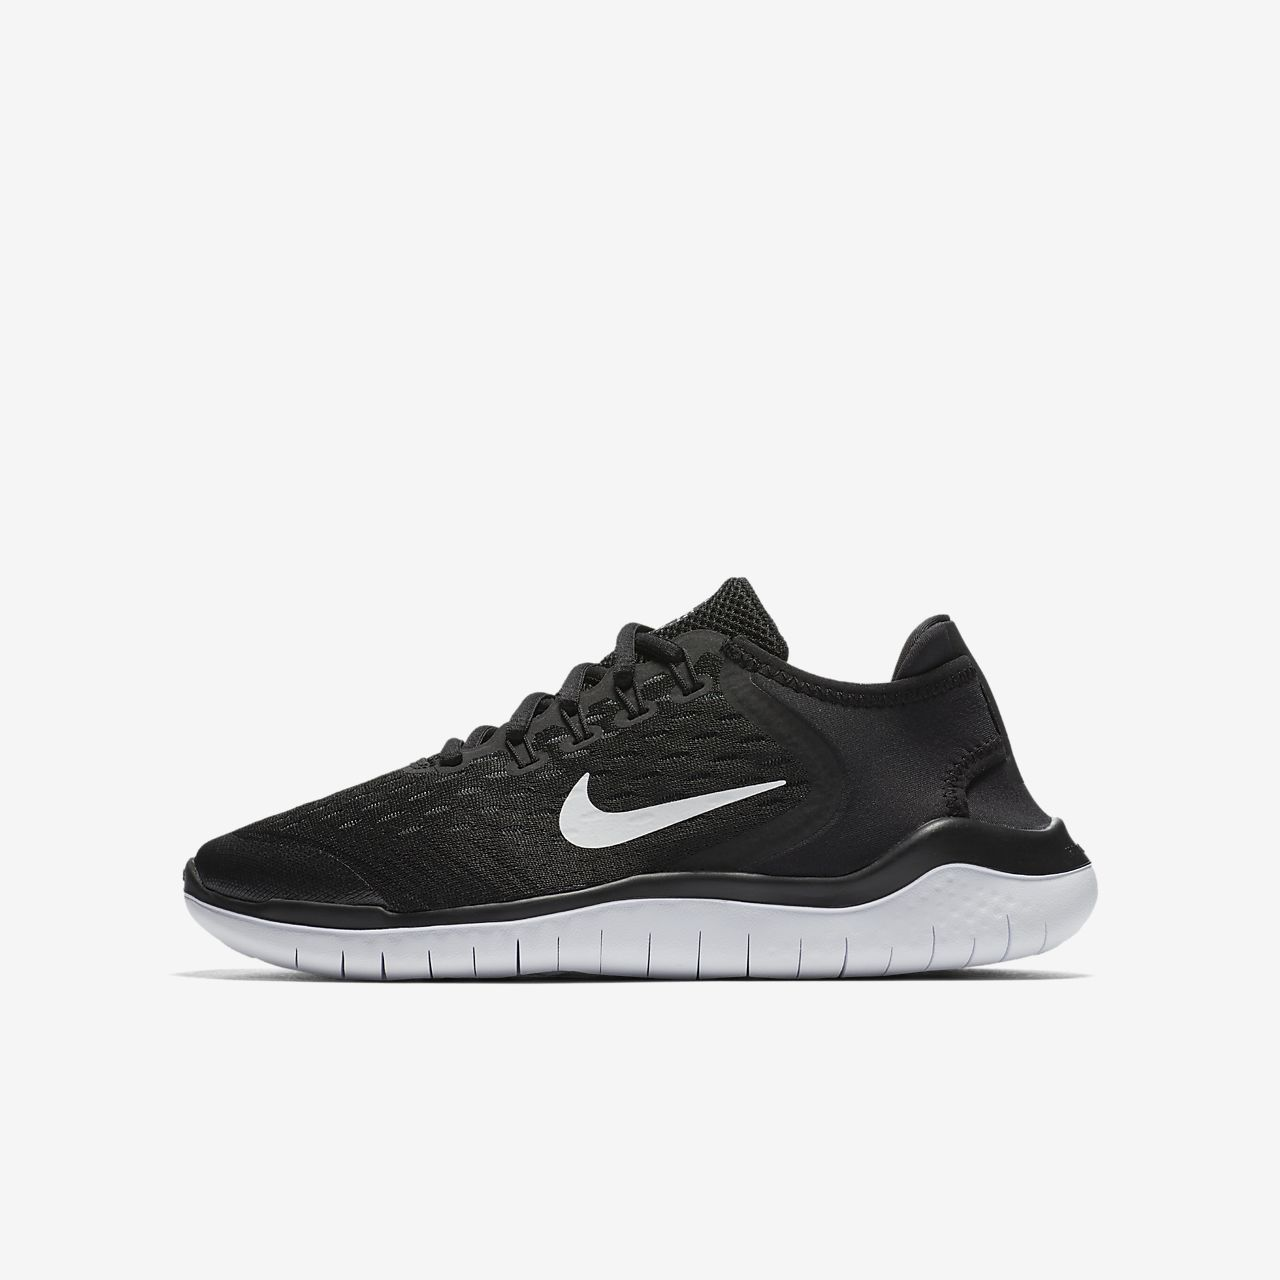 a6a907b8c4b547 Older Kids  Running Shoe. Nike Free RN 2018